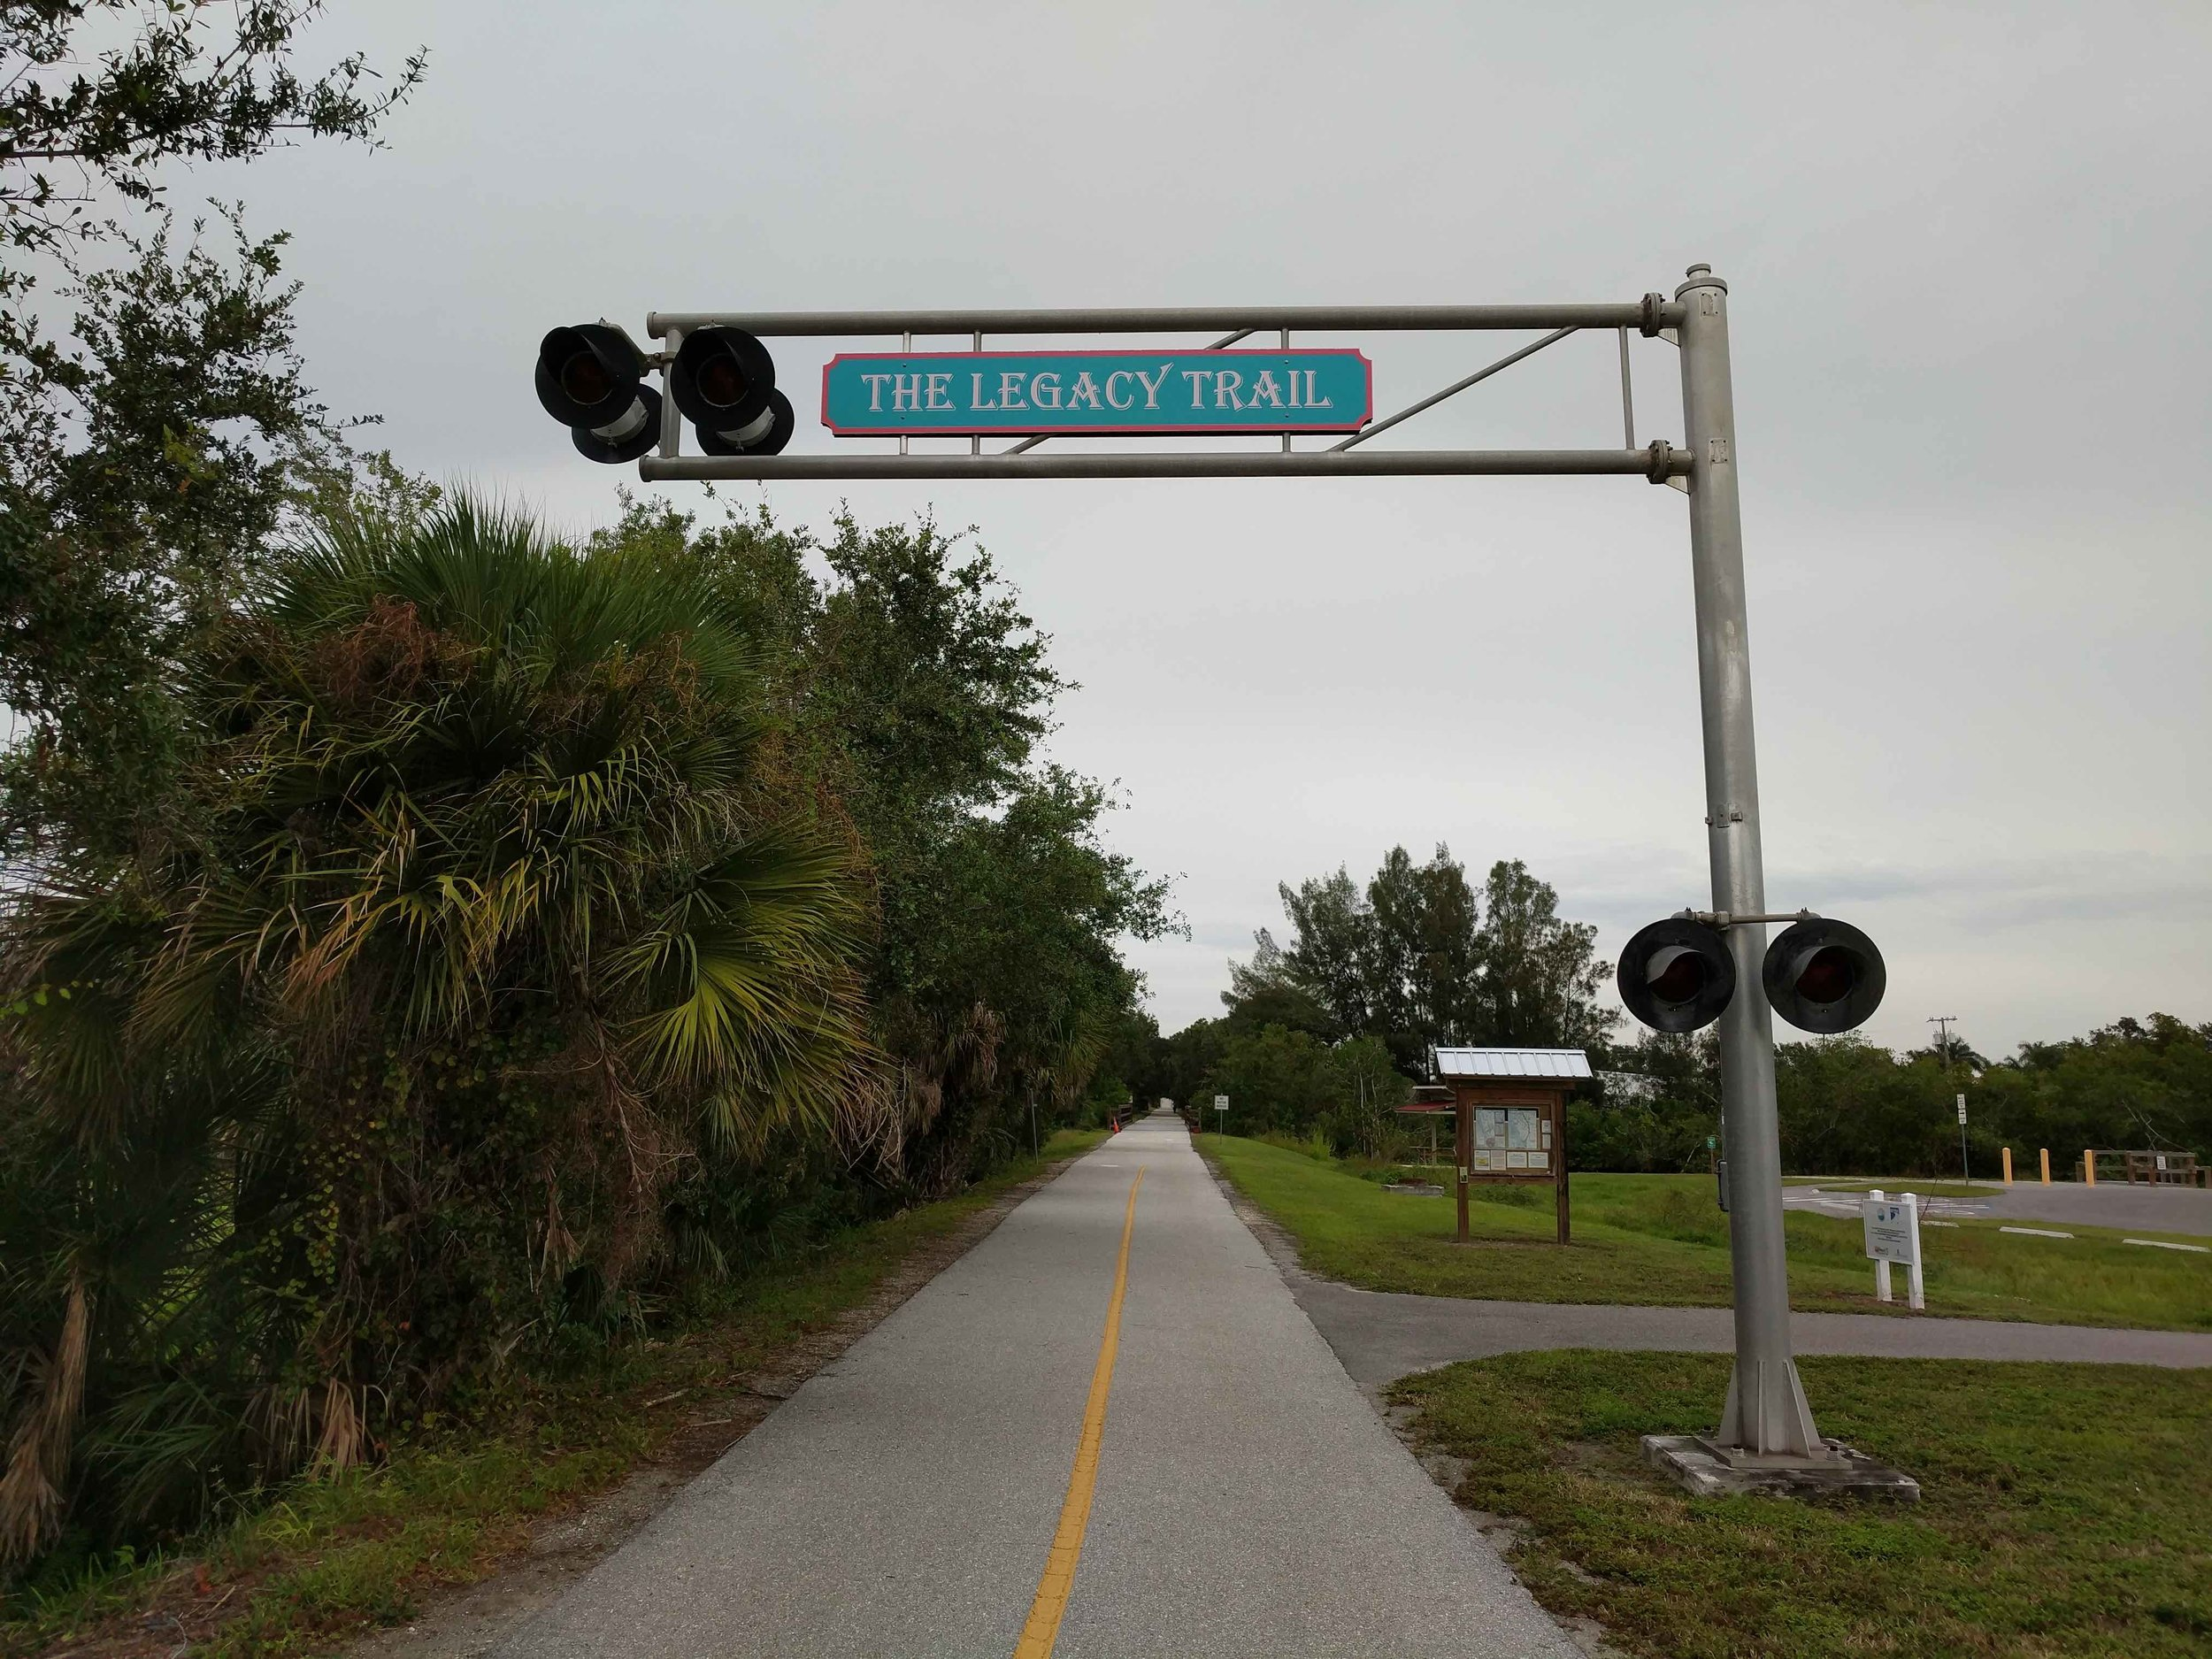 The Legacy Trail in Sarasota, Florida (Source: Wikimedia Commons)